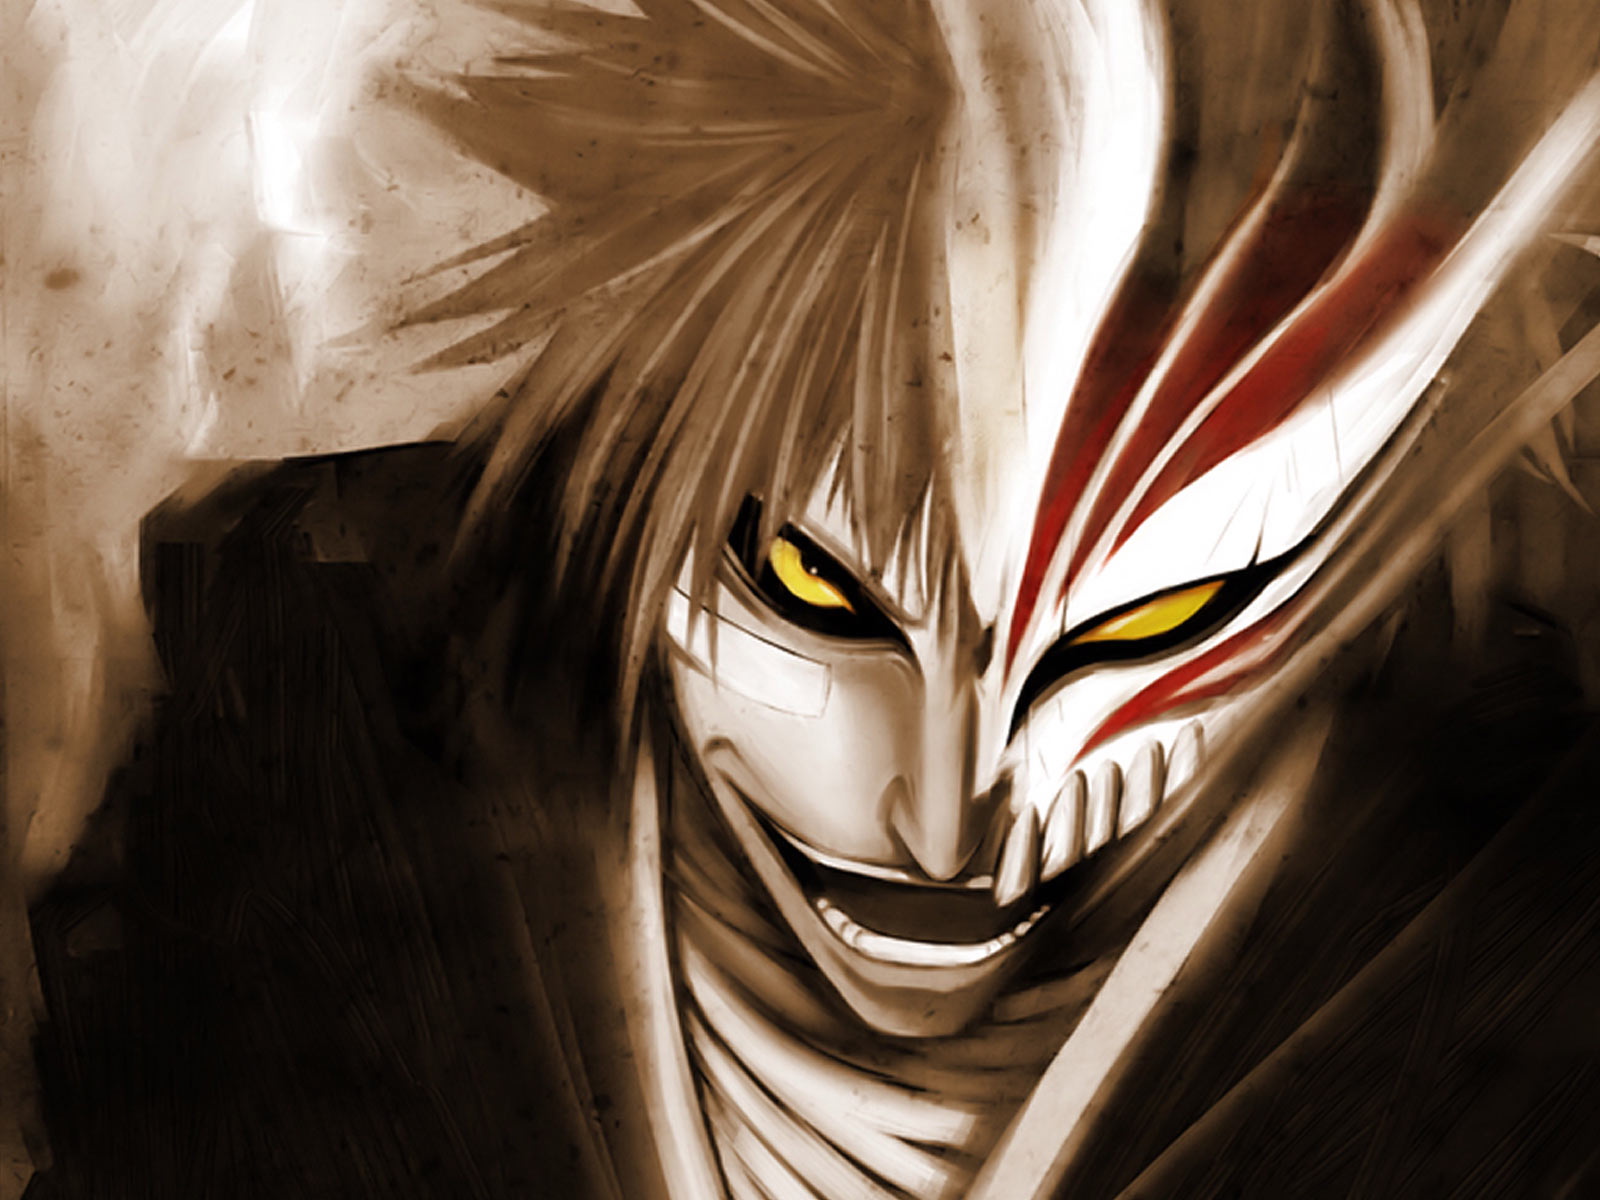 Bleach Images & pictures